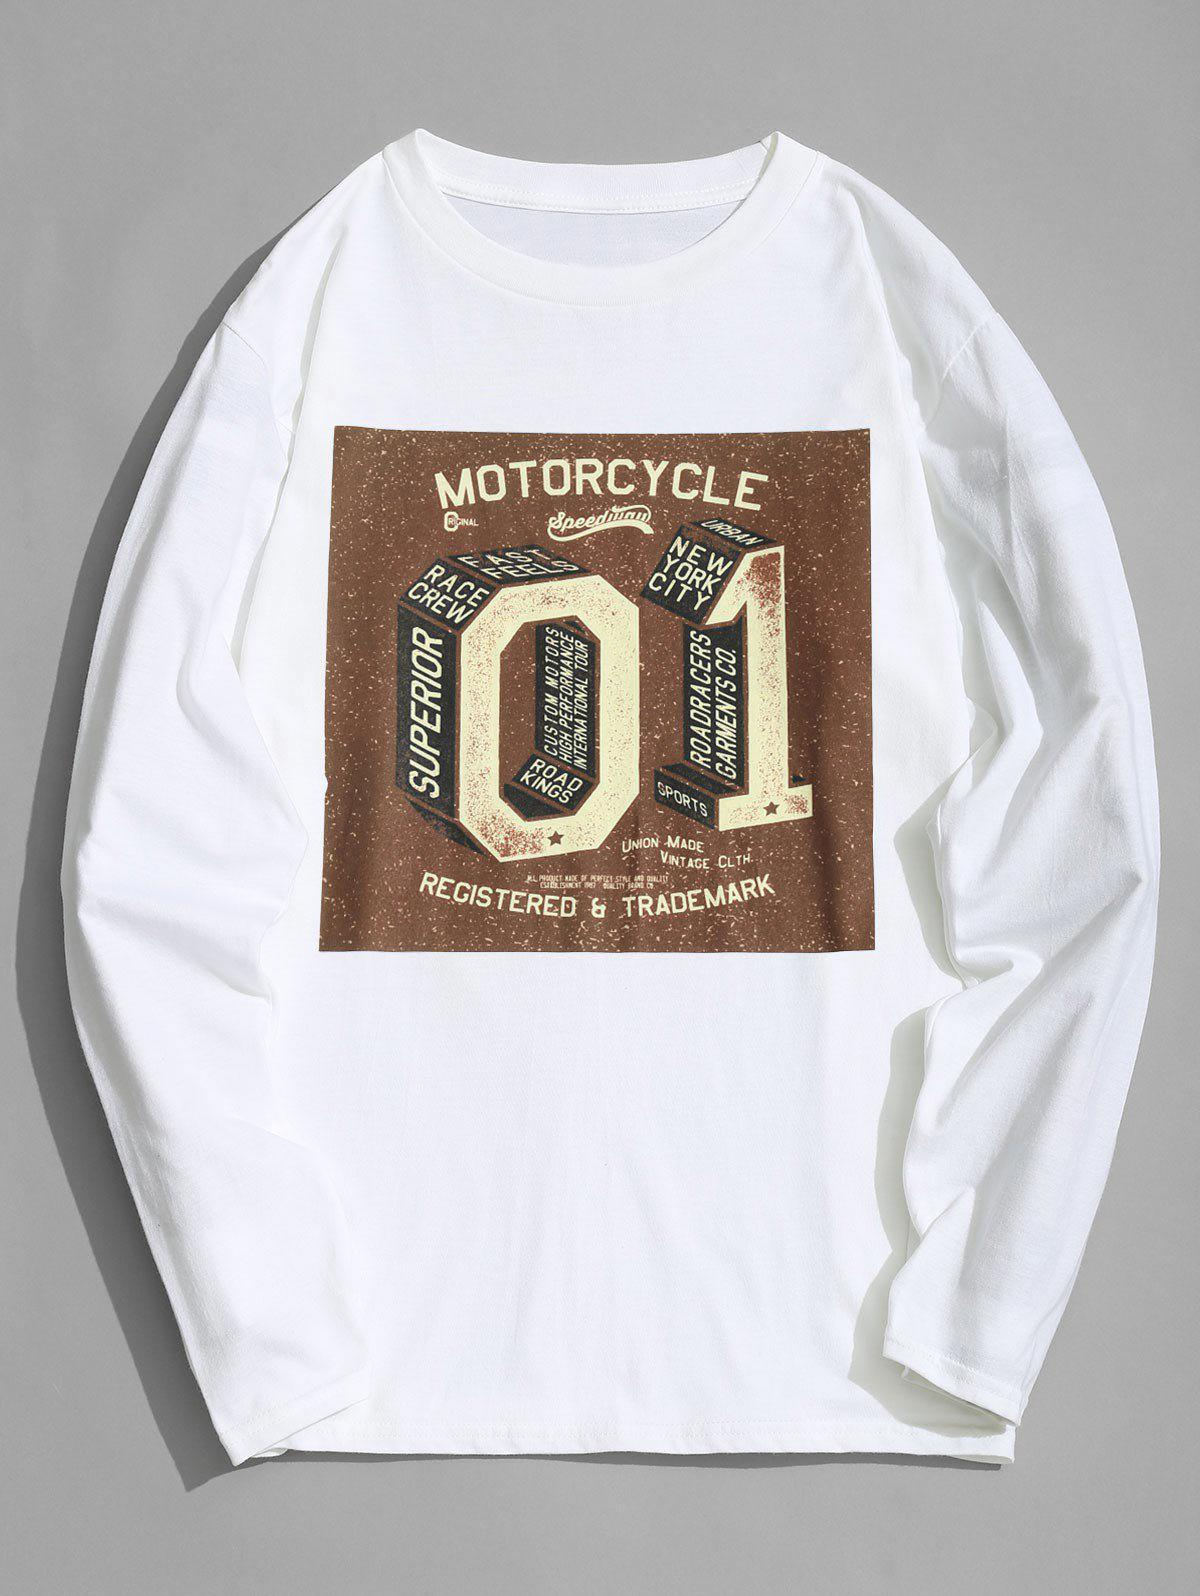 Motorcycle Graphic Long Sleeve T shirt 255229401